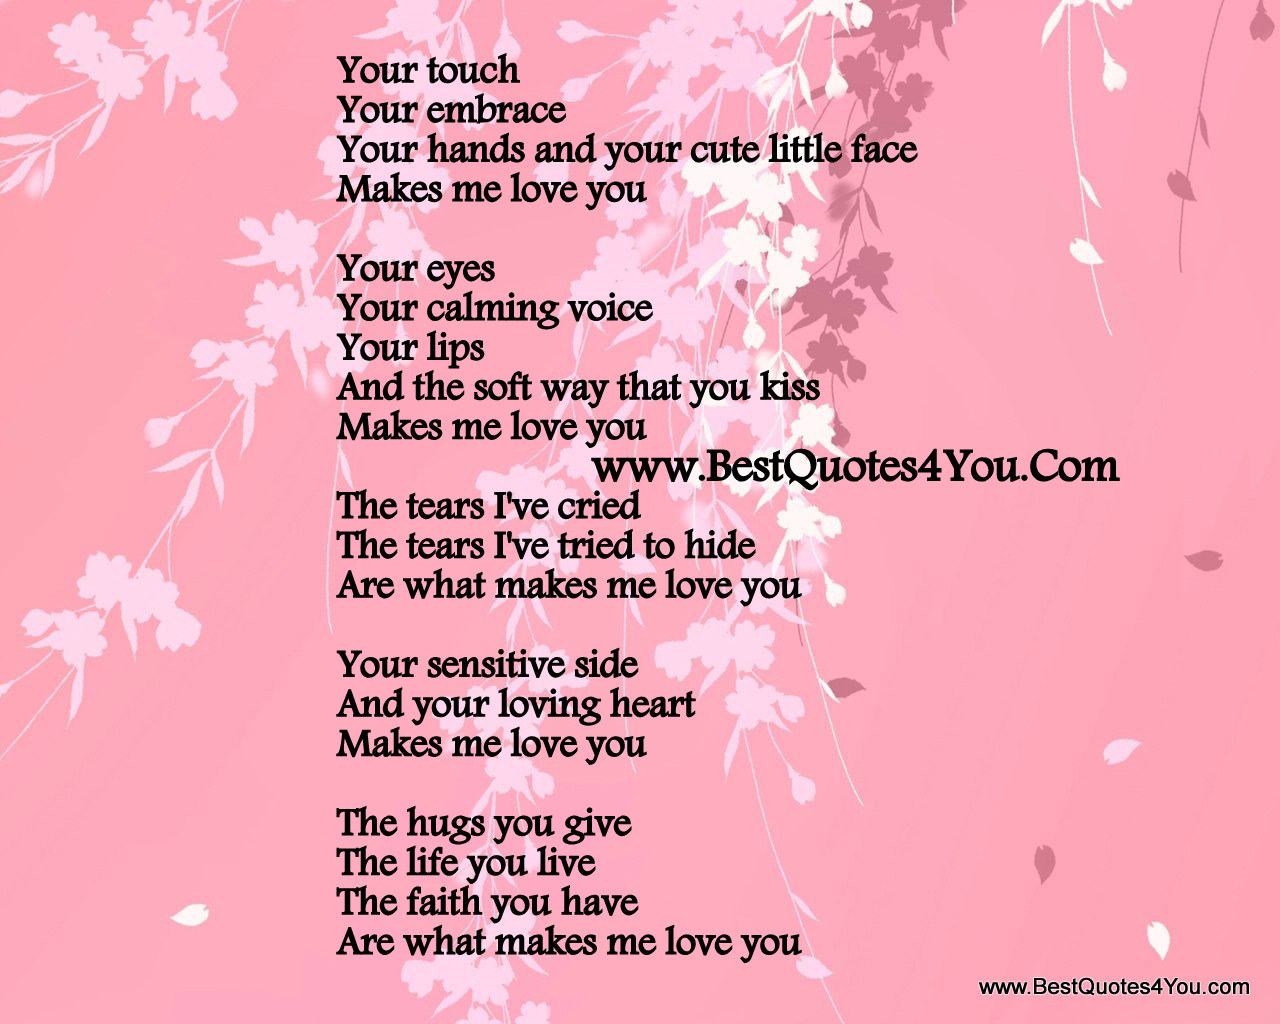 New Relationship Quotes For Her: New Relationship Quotes For Her. QuotesGram